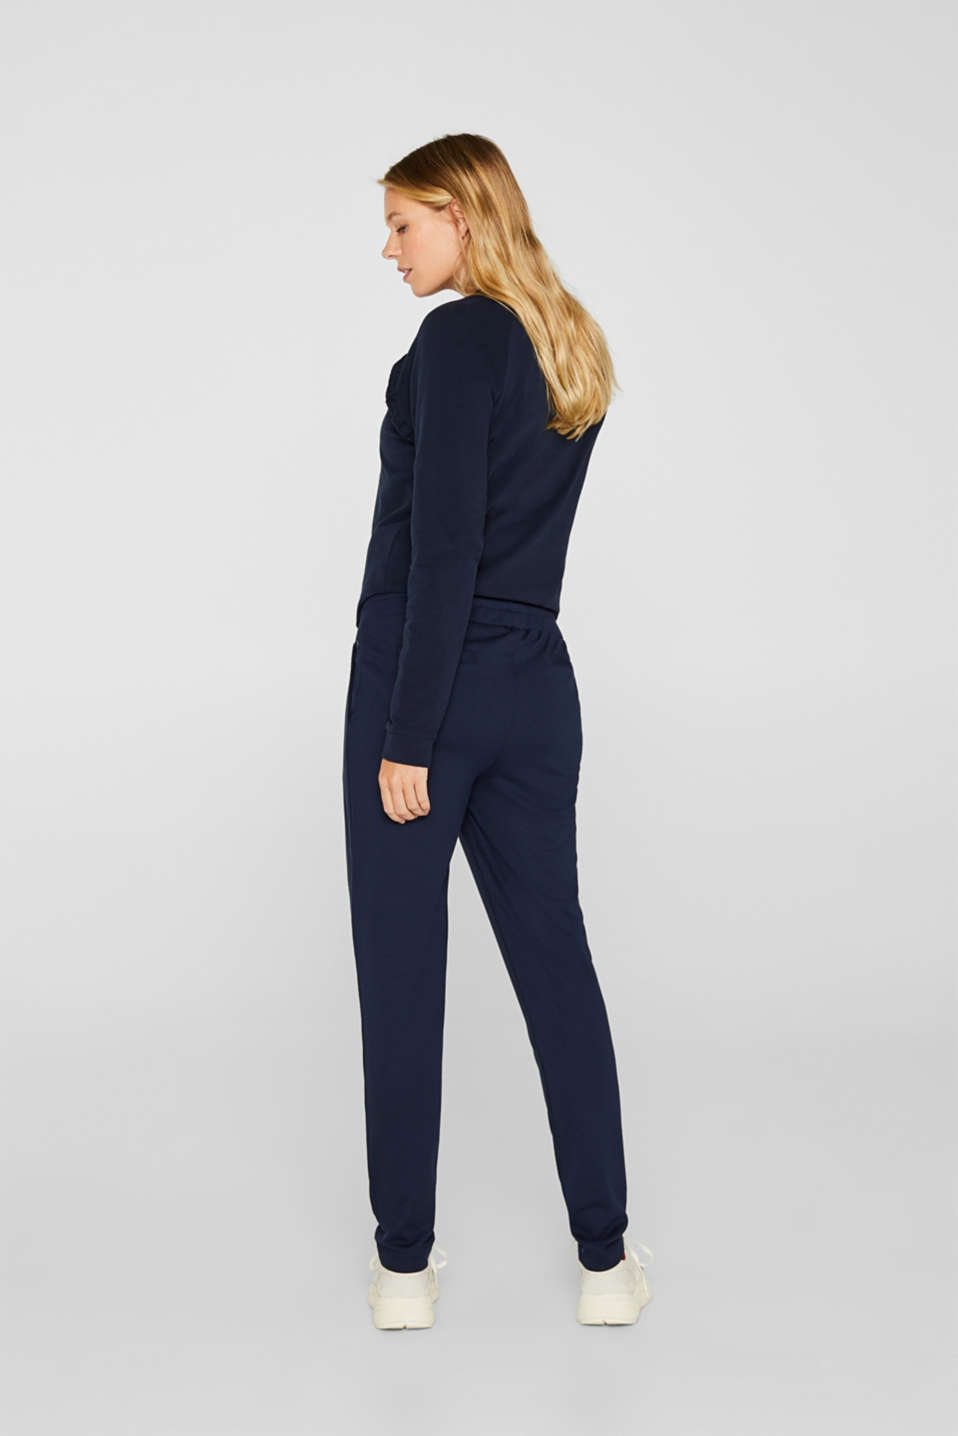 Stretch jersey trousers with under-bump waistband, LCNIGHT BLUE, detail image number 3